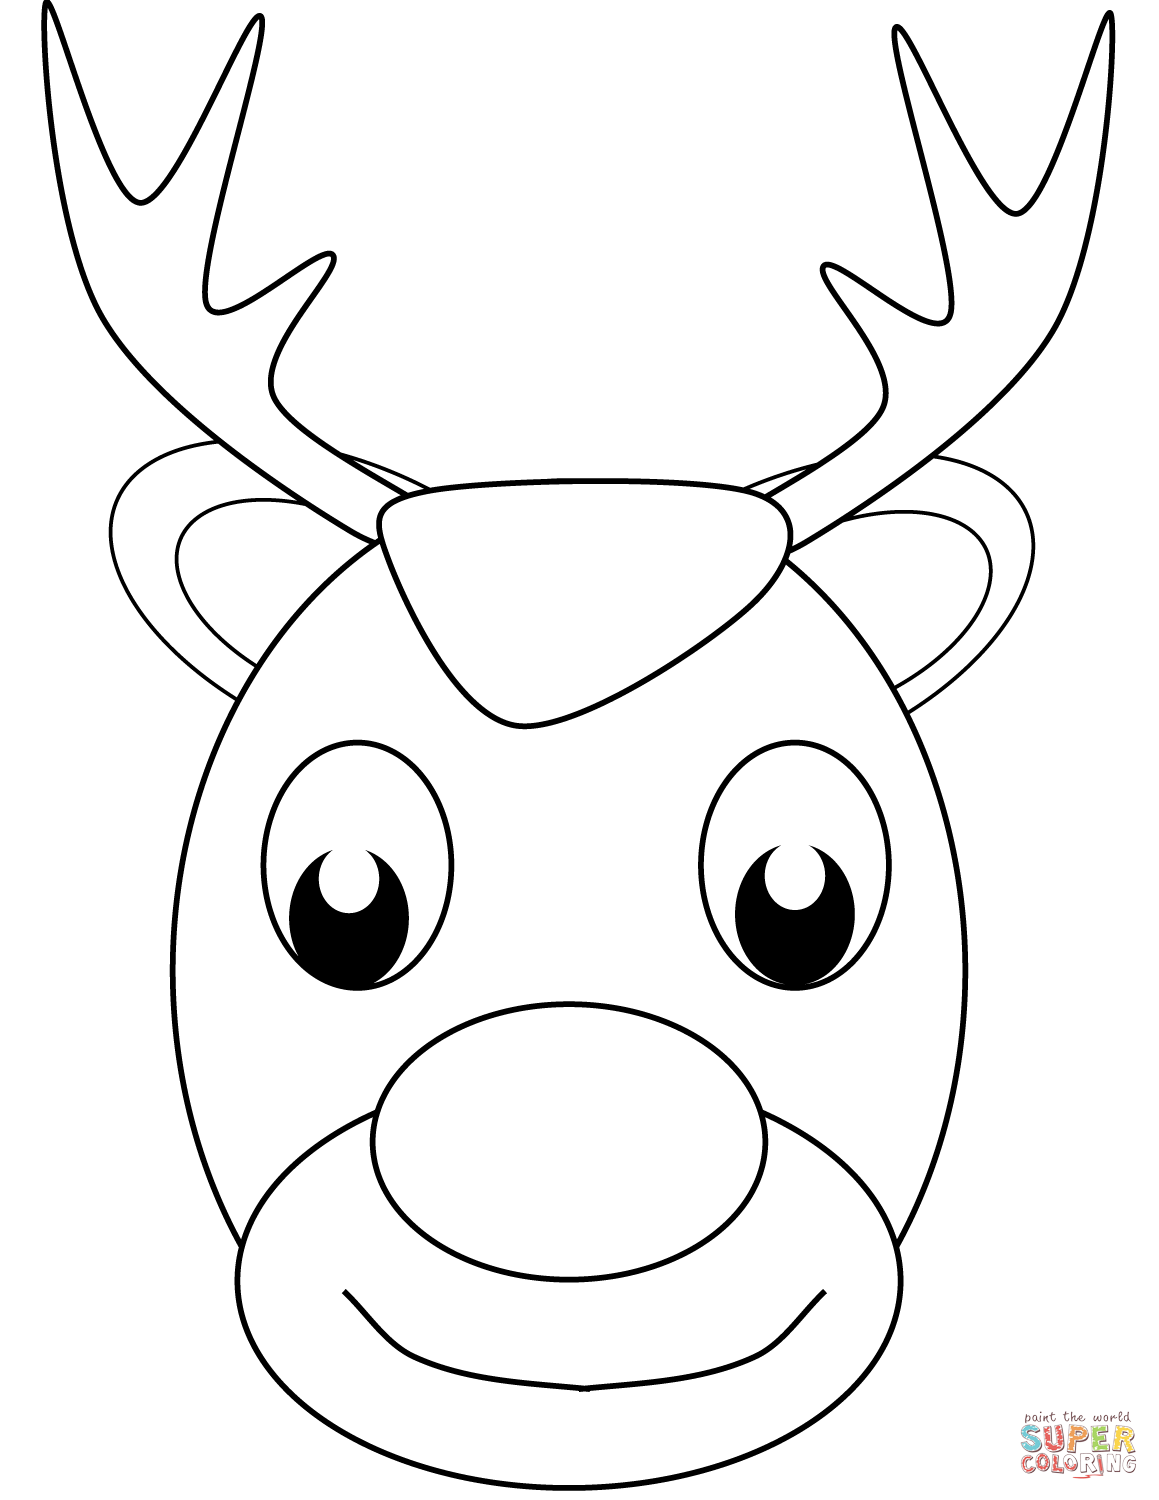 Christmas Reindeer Face Coloring Page